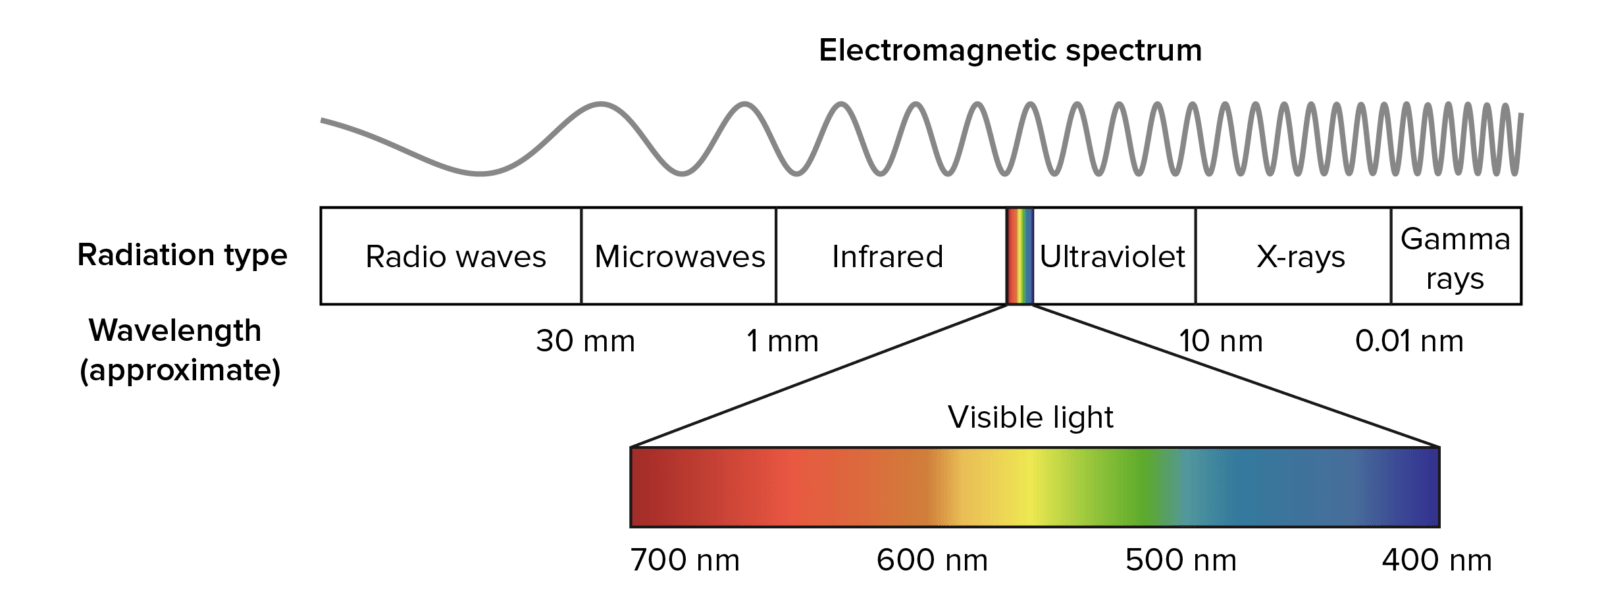 technical scheme of electromagnetic spectrum